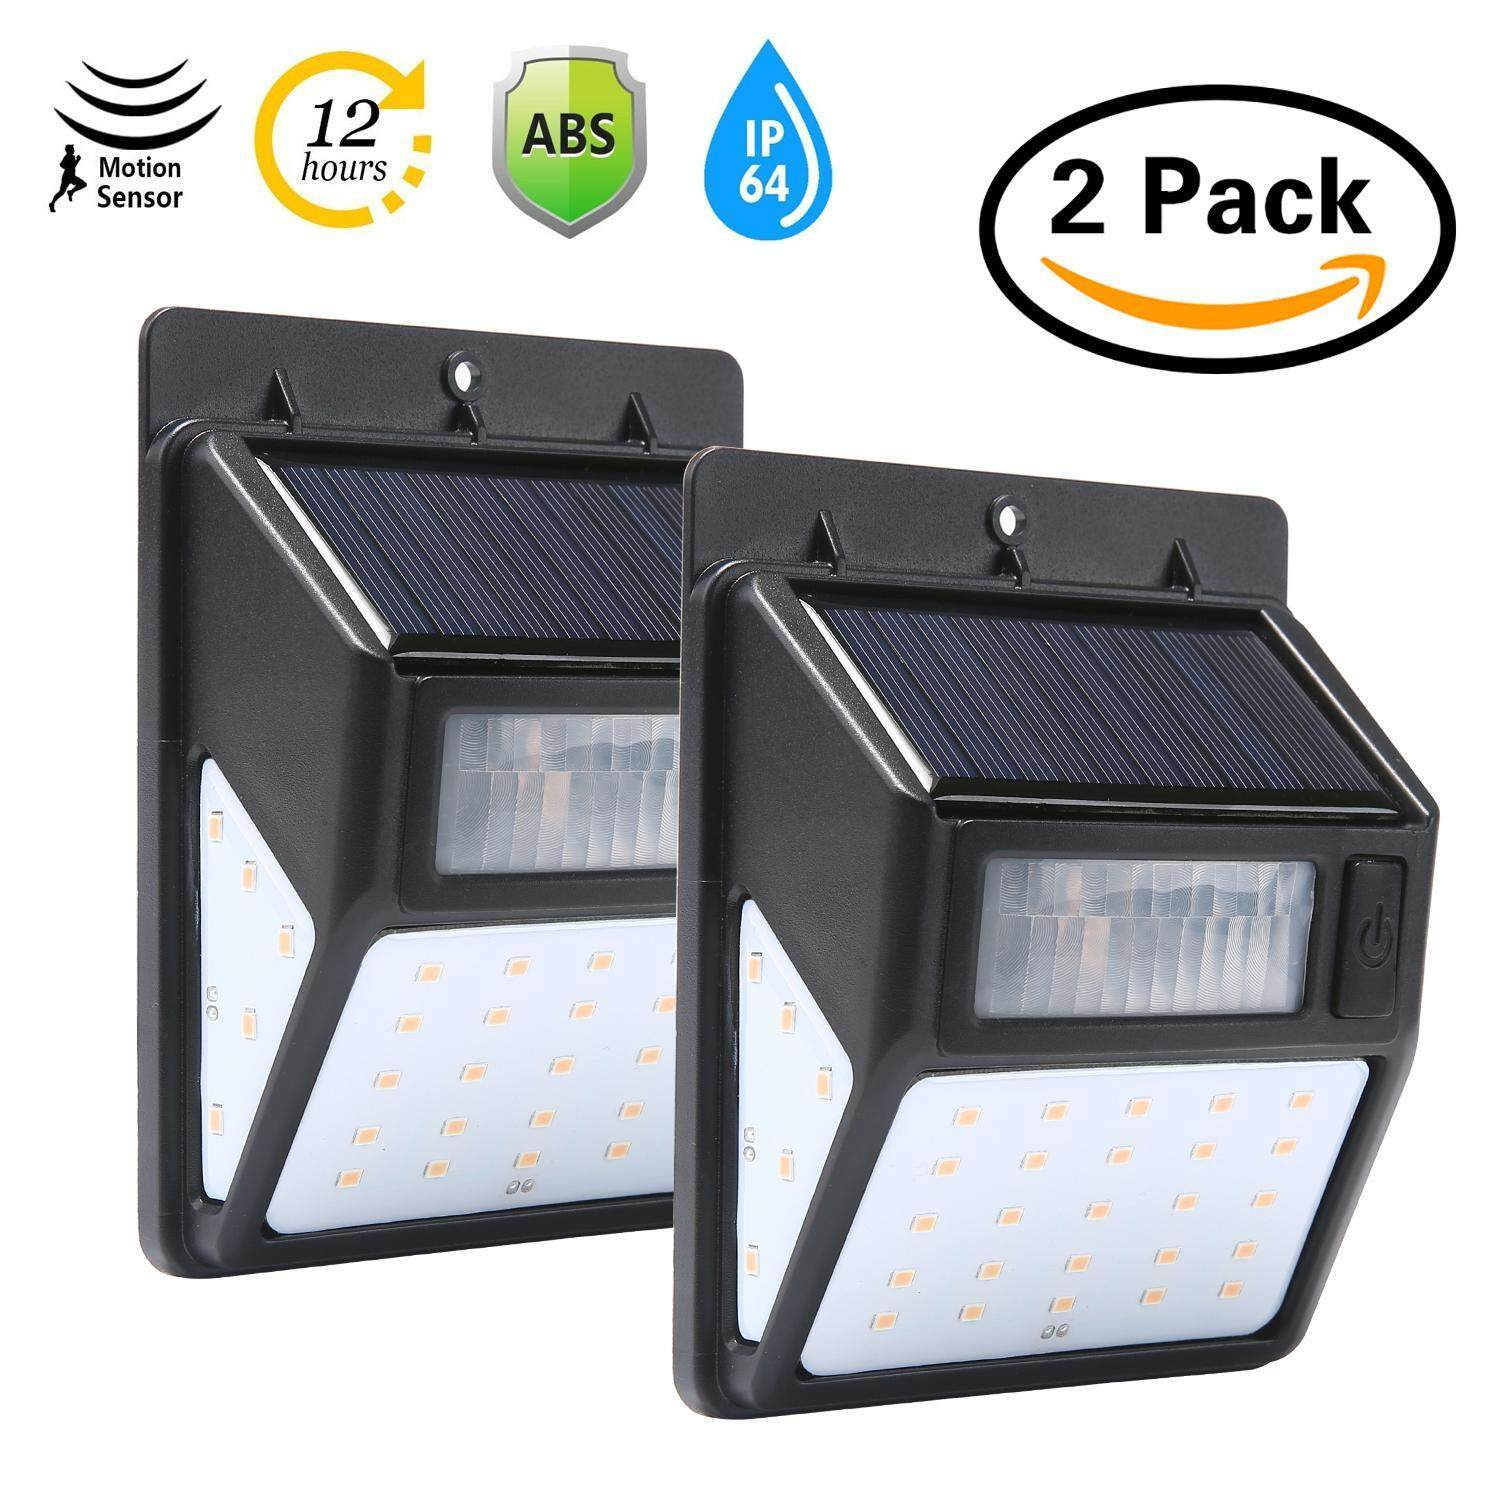 Teepao 2 Pack Outdoor Waterproof 35 Led Solar Motion Light Wall Light For Yard, Front Door, Patio, Pathway, Driveway, Emergency Use (Warm White)